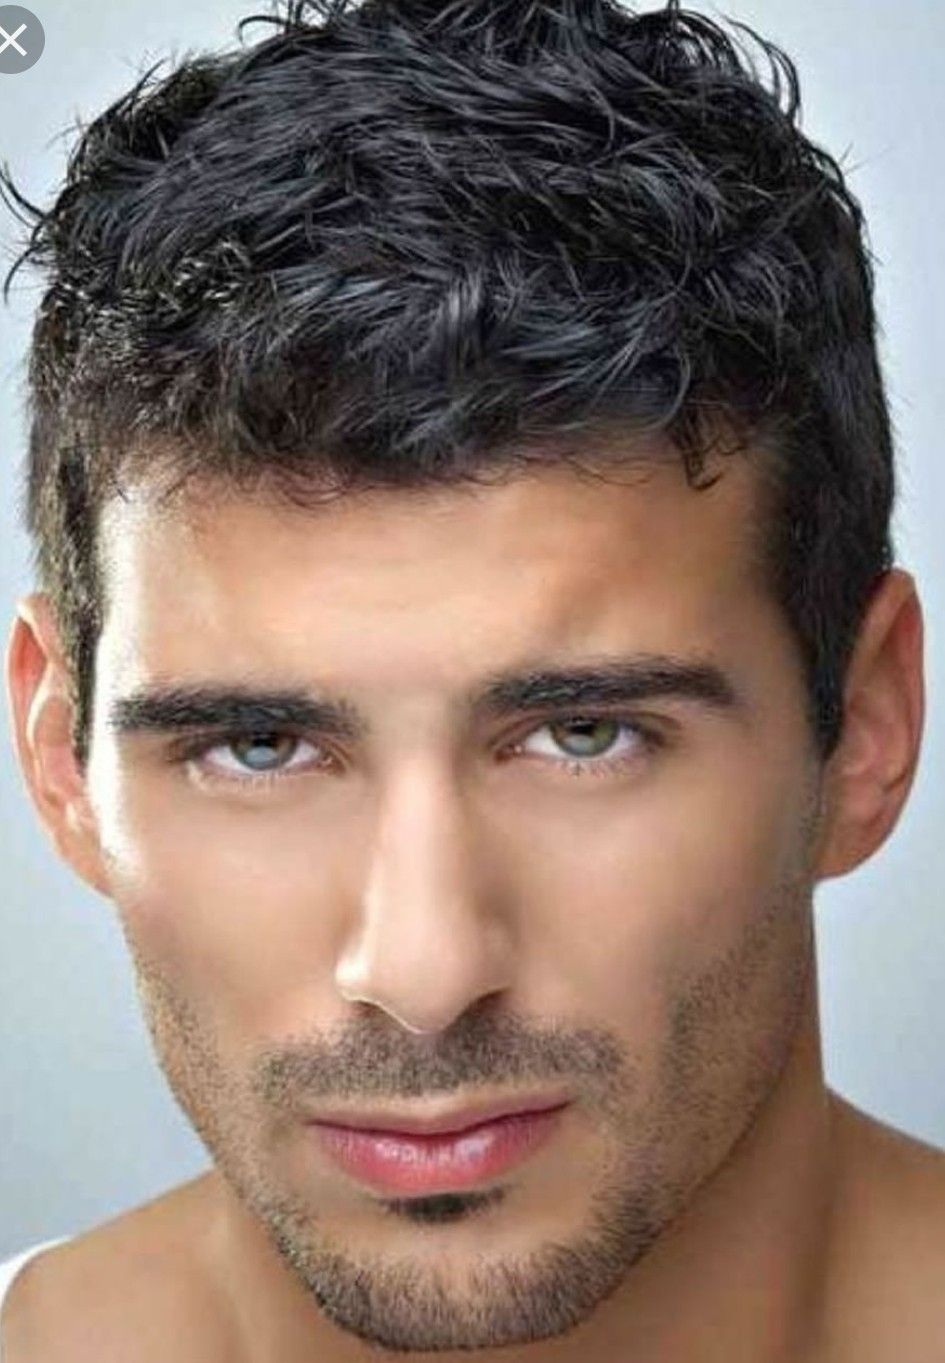 Pin By Alda Maria On Cabelos Mens Hairstyles Curly Thick Curly Hair Thick Hair Styles